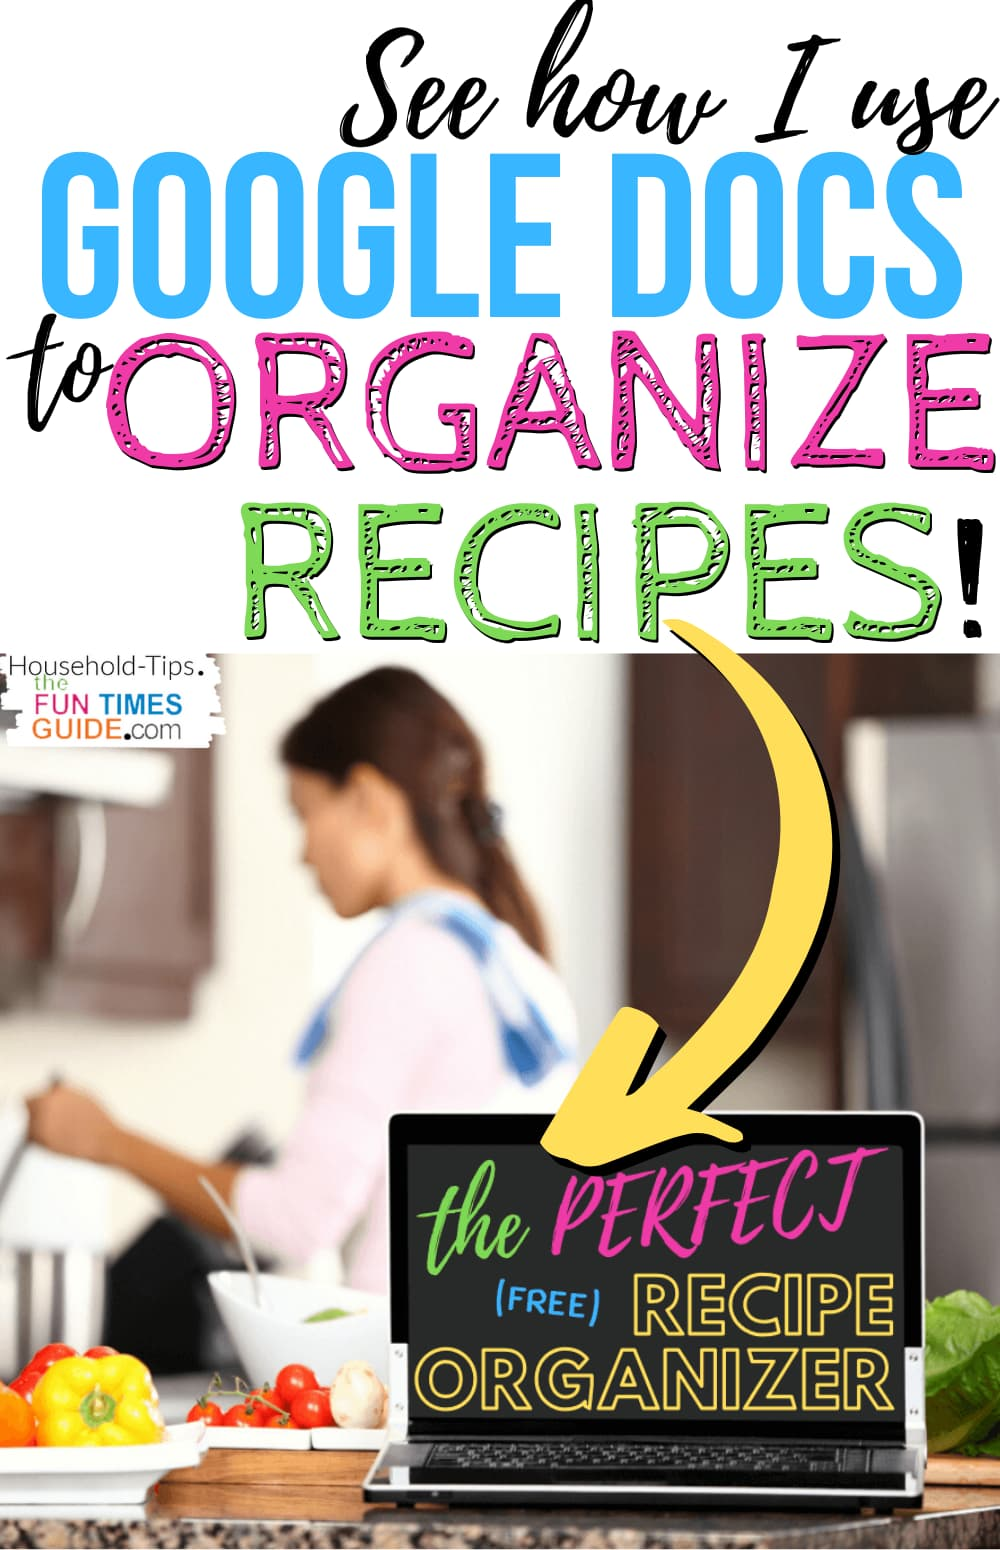 The Perfect Recipe Organizer: Google Docs… It's FREE!